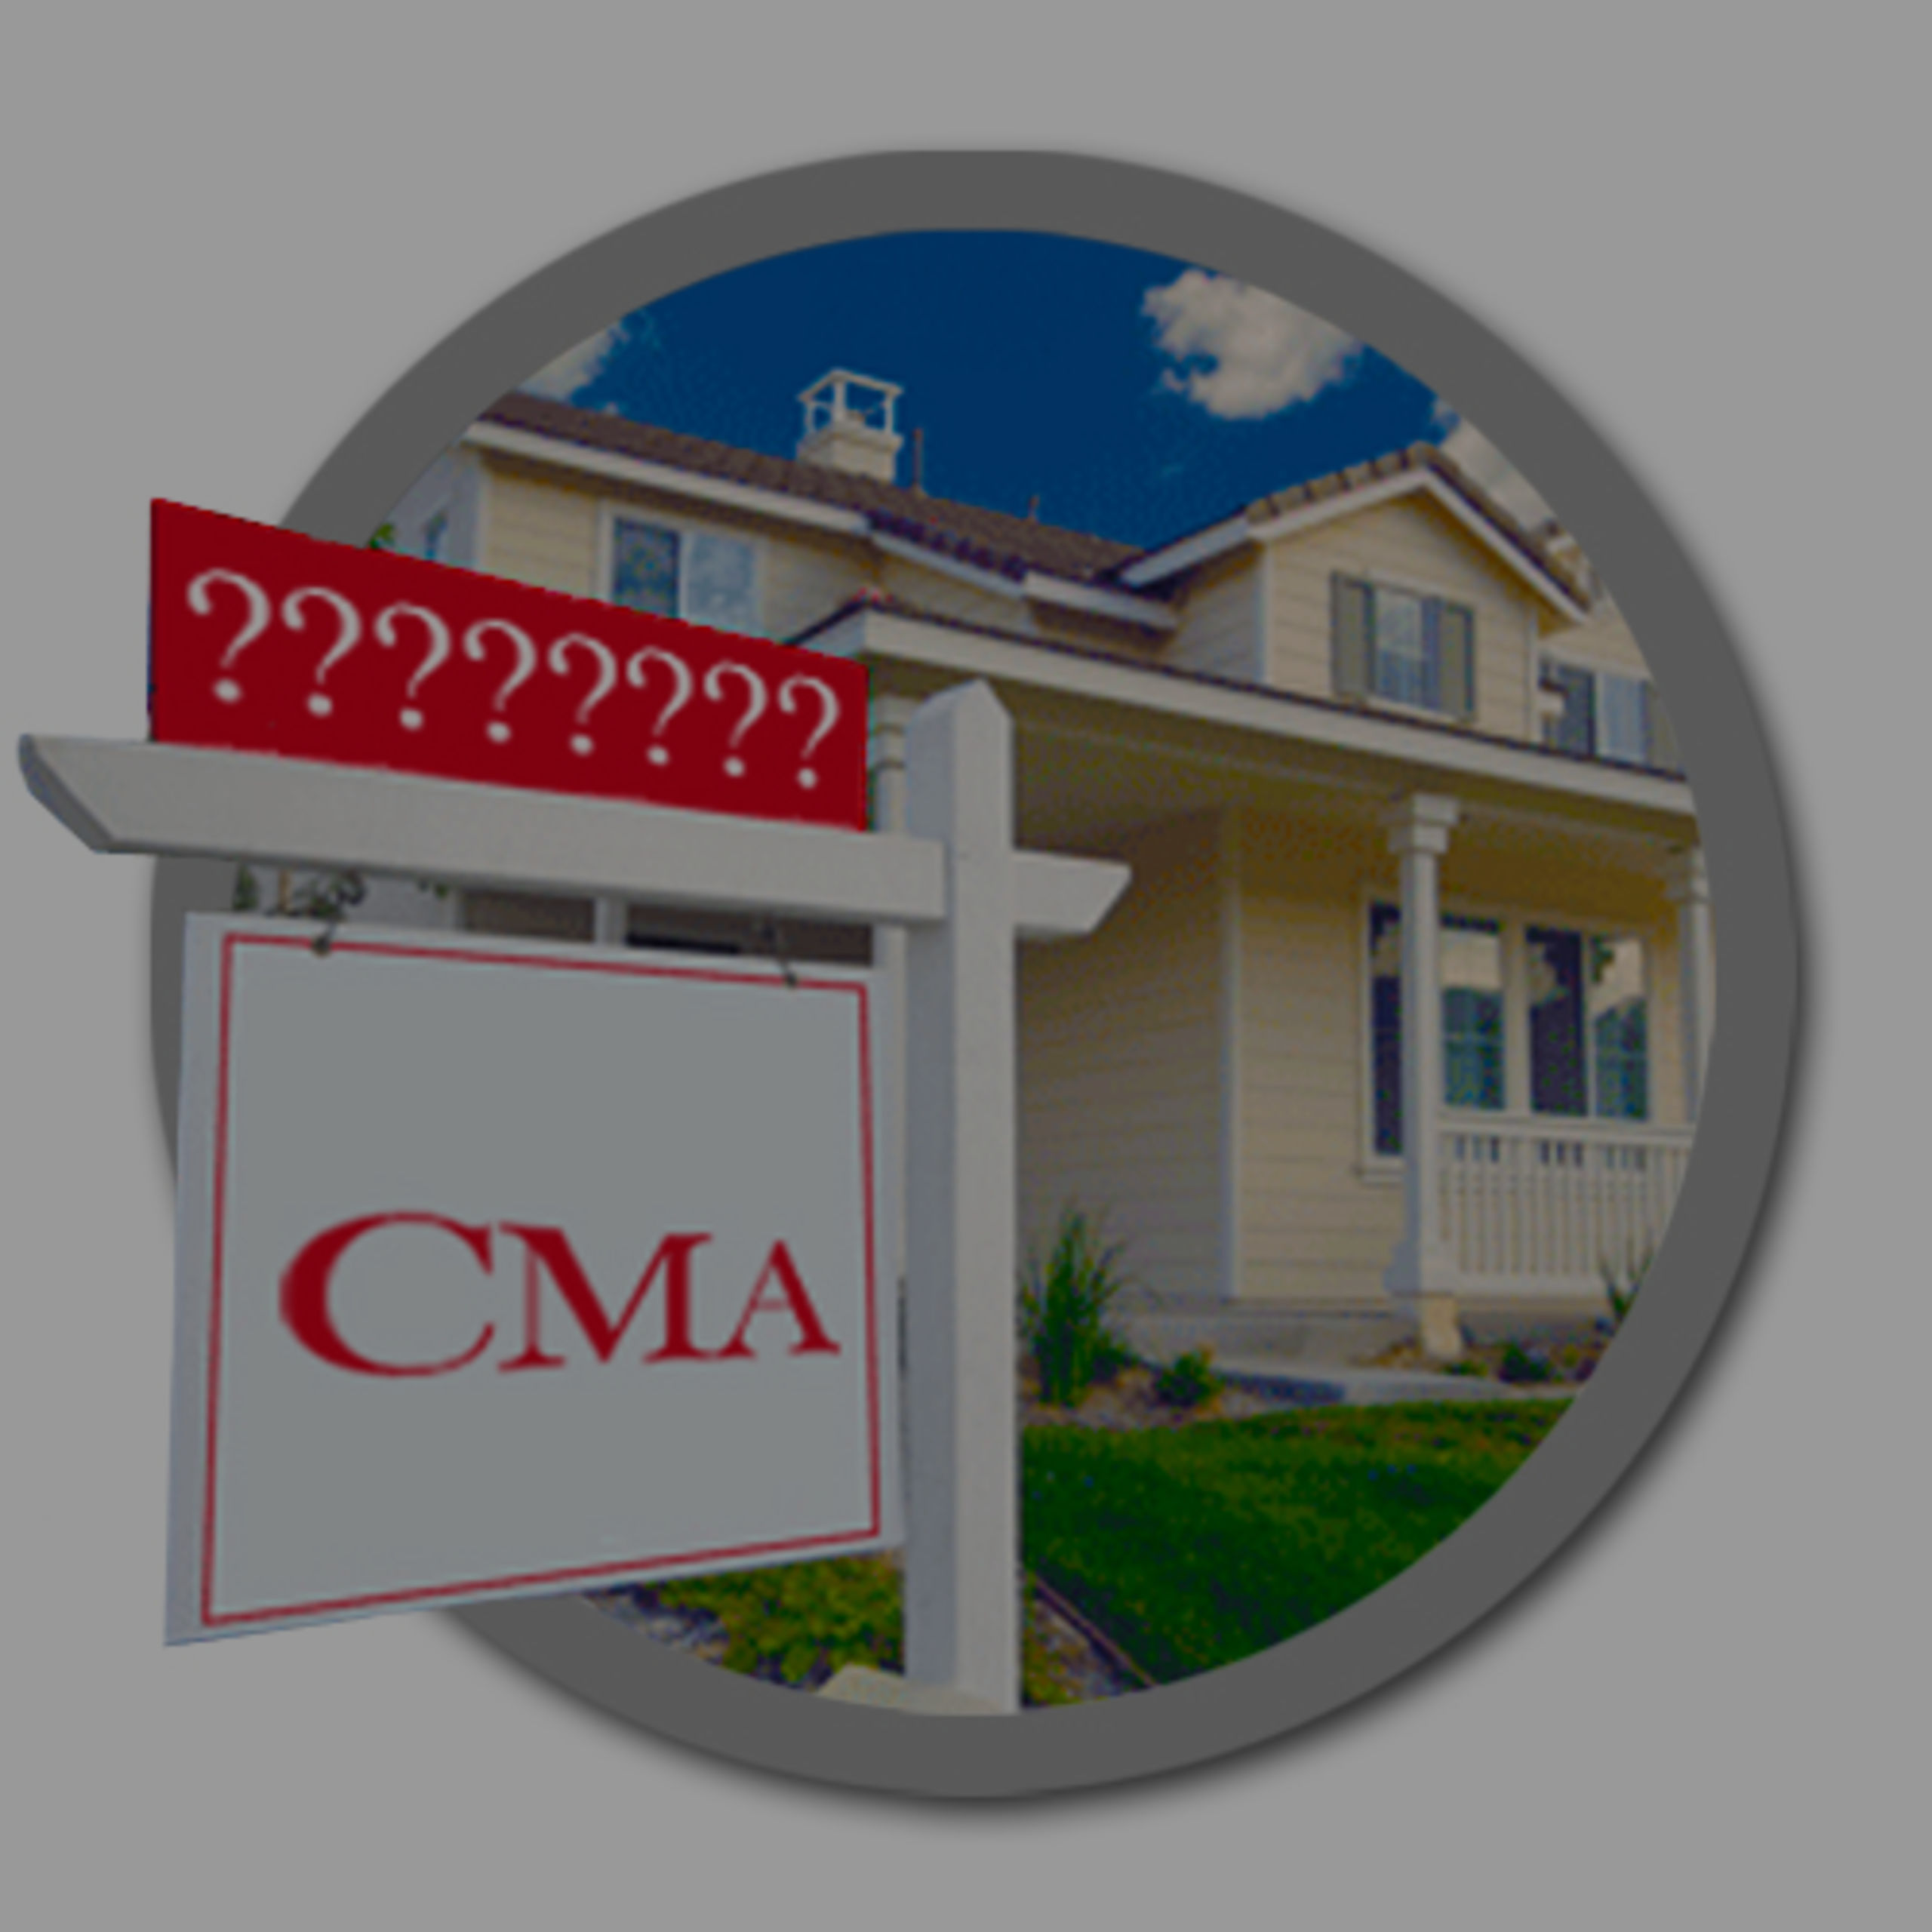 Sellers: What is a CMA?